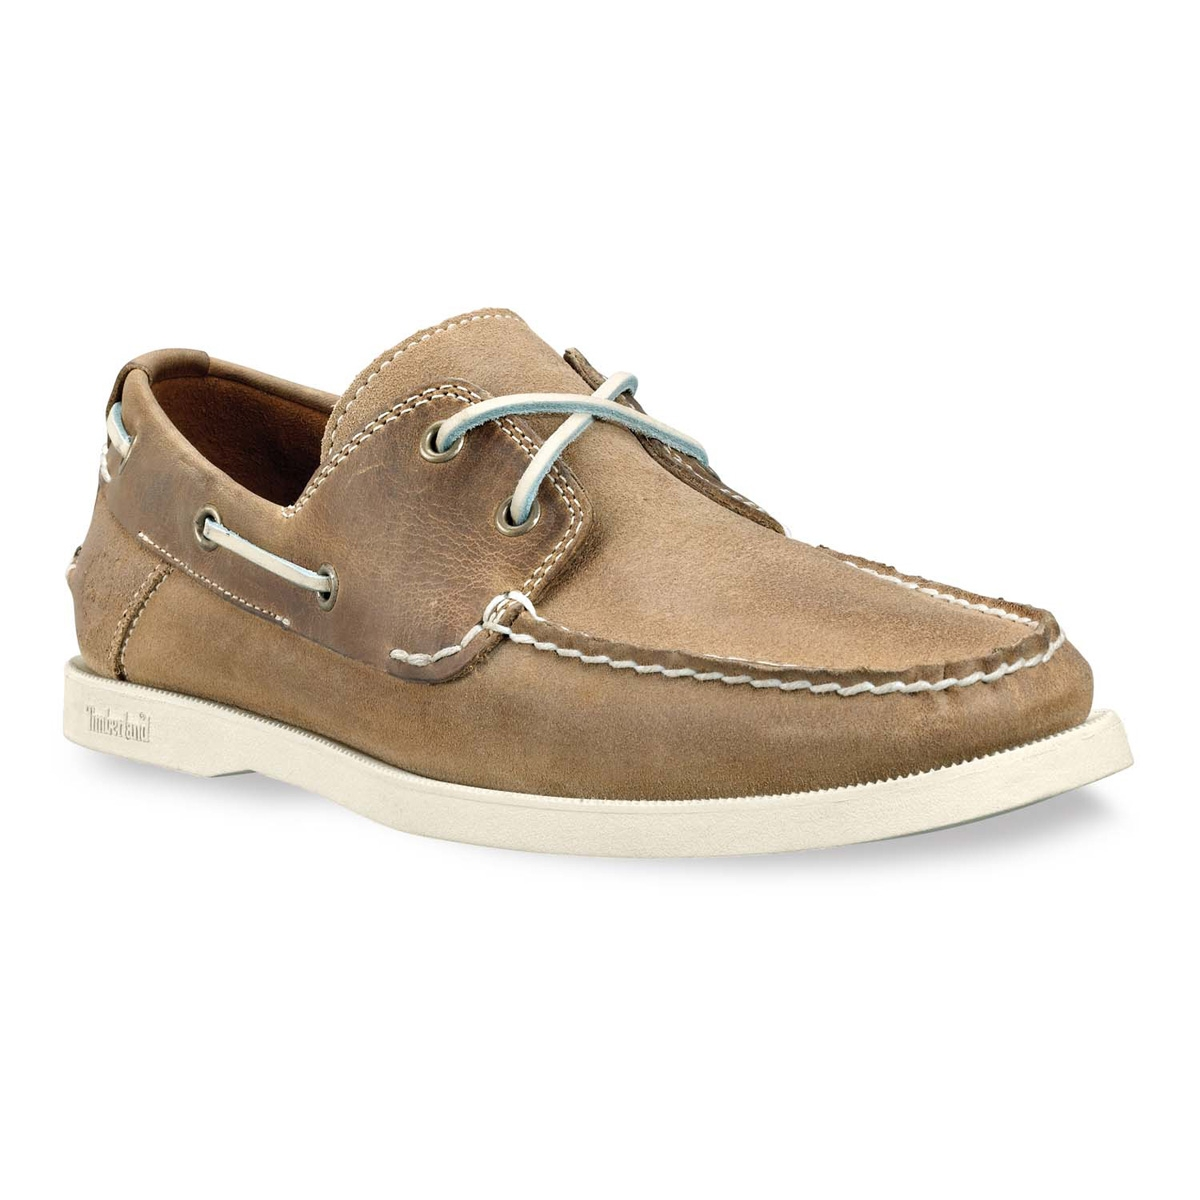 Deckshoes for Sale. Deck shoes for Men and Deck shoes for Women. Top Brands such as Dubarry, Orca Bay, Chatham, Henri Lloyd and much more.